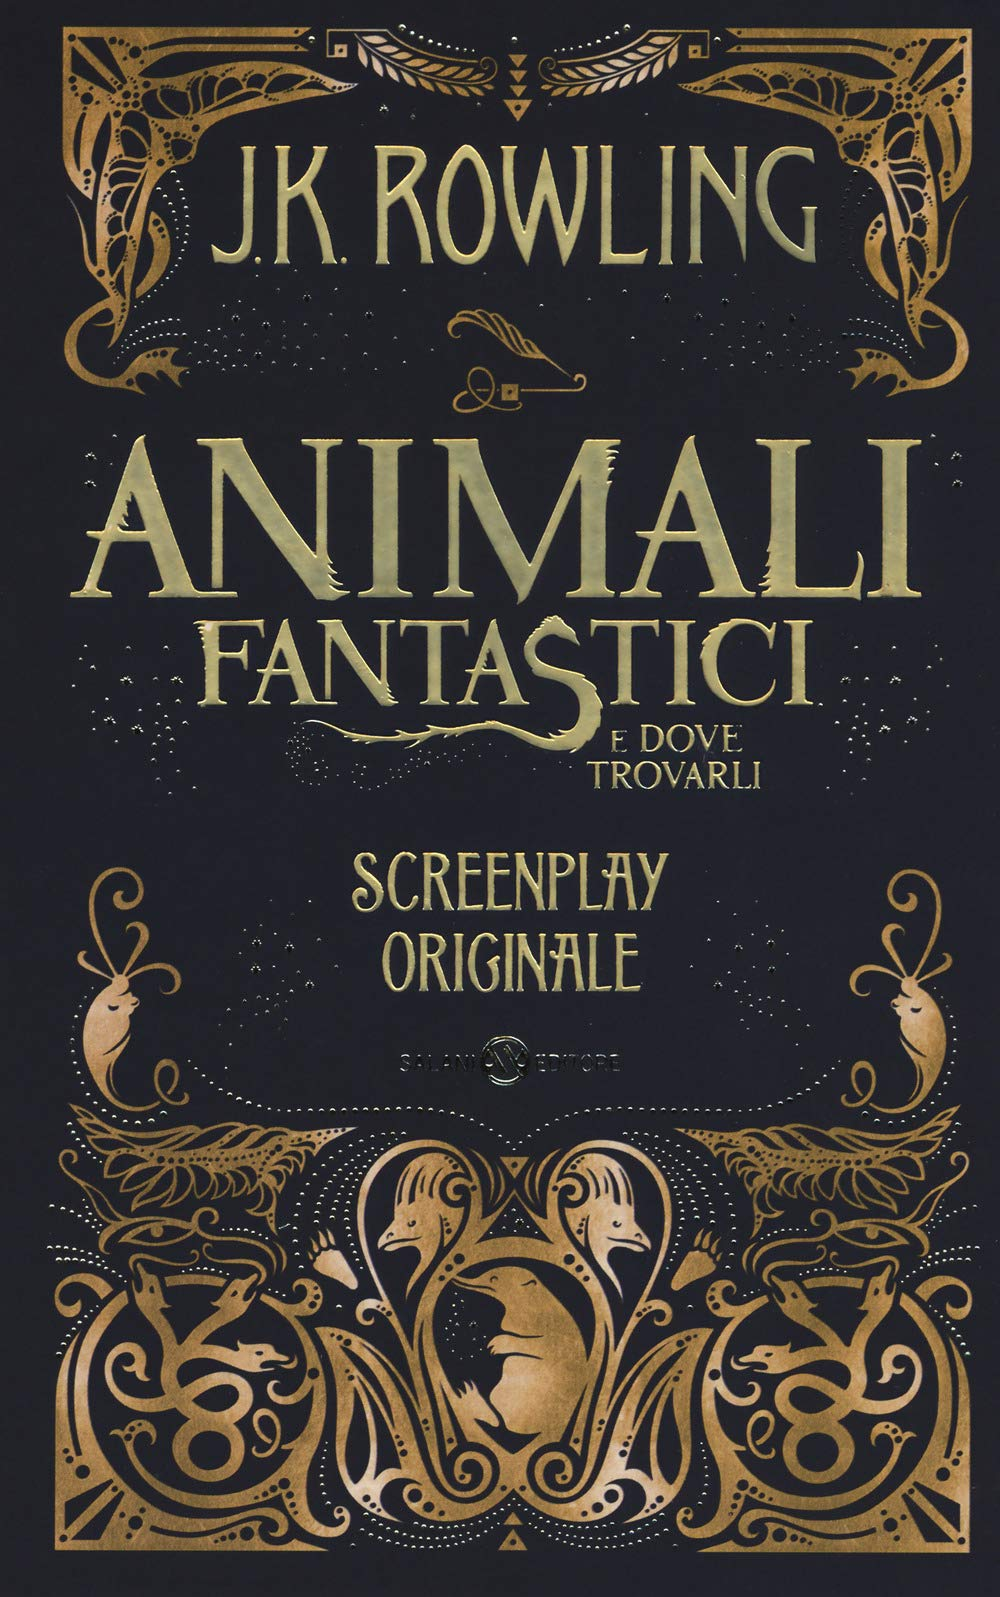 Animali fantastici e dove trovarli. Screenplay originale.